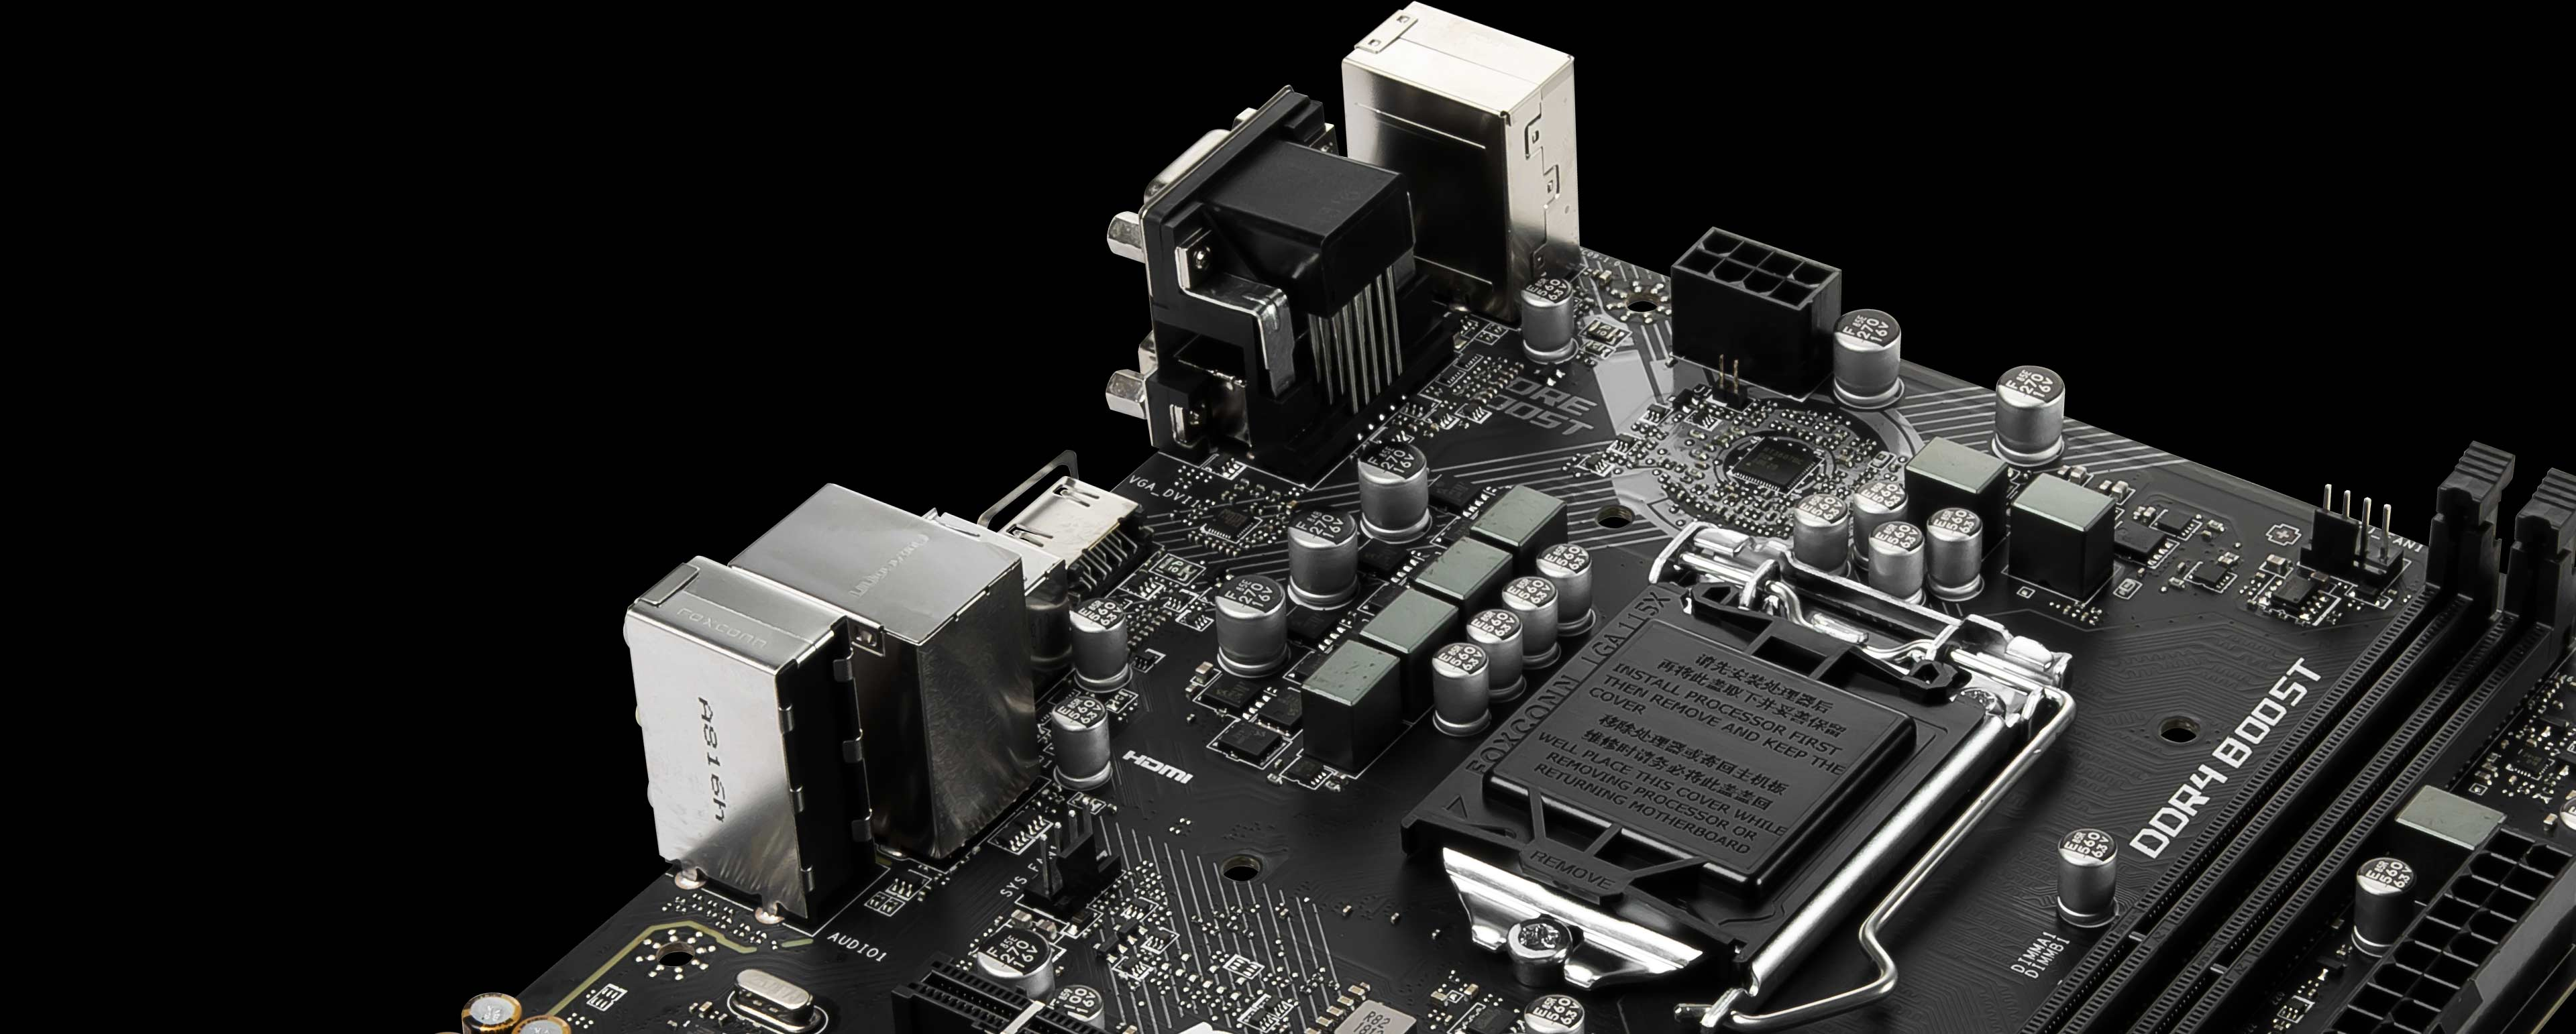 H310M PRO-VDH PLUS   Motherboard - The world leader in